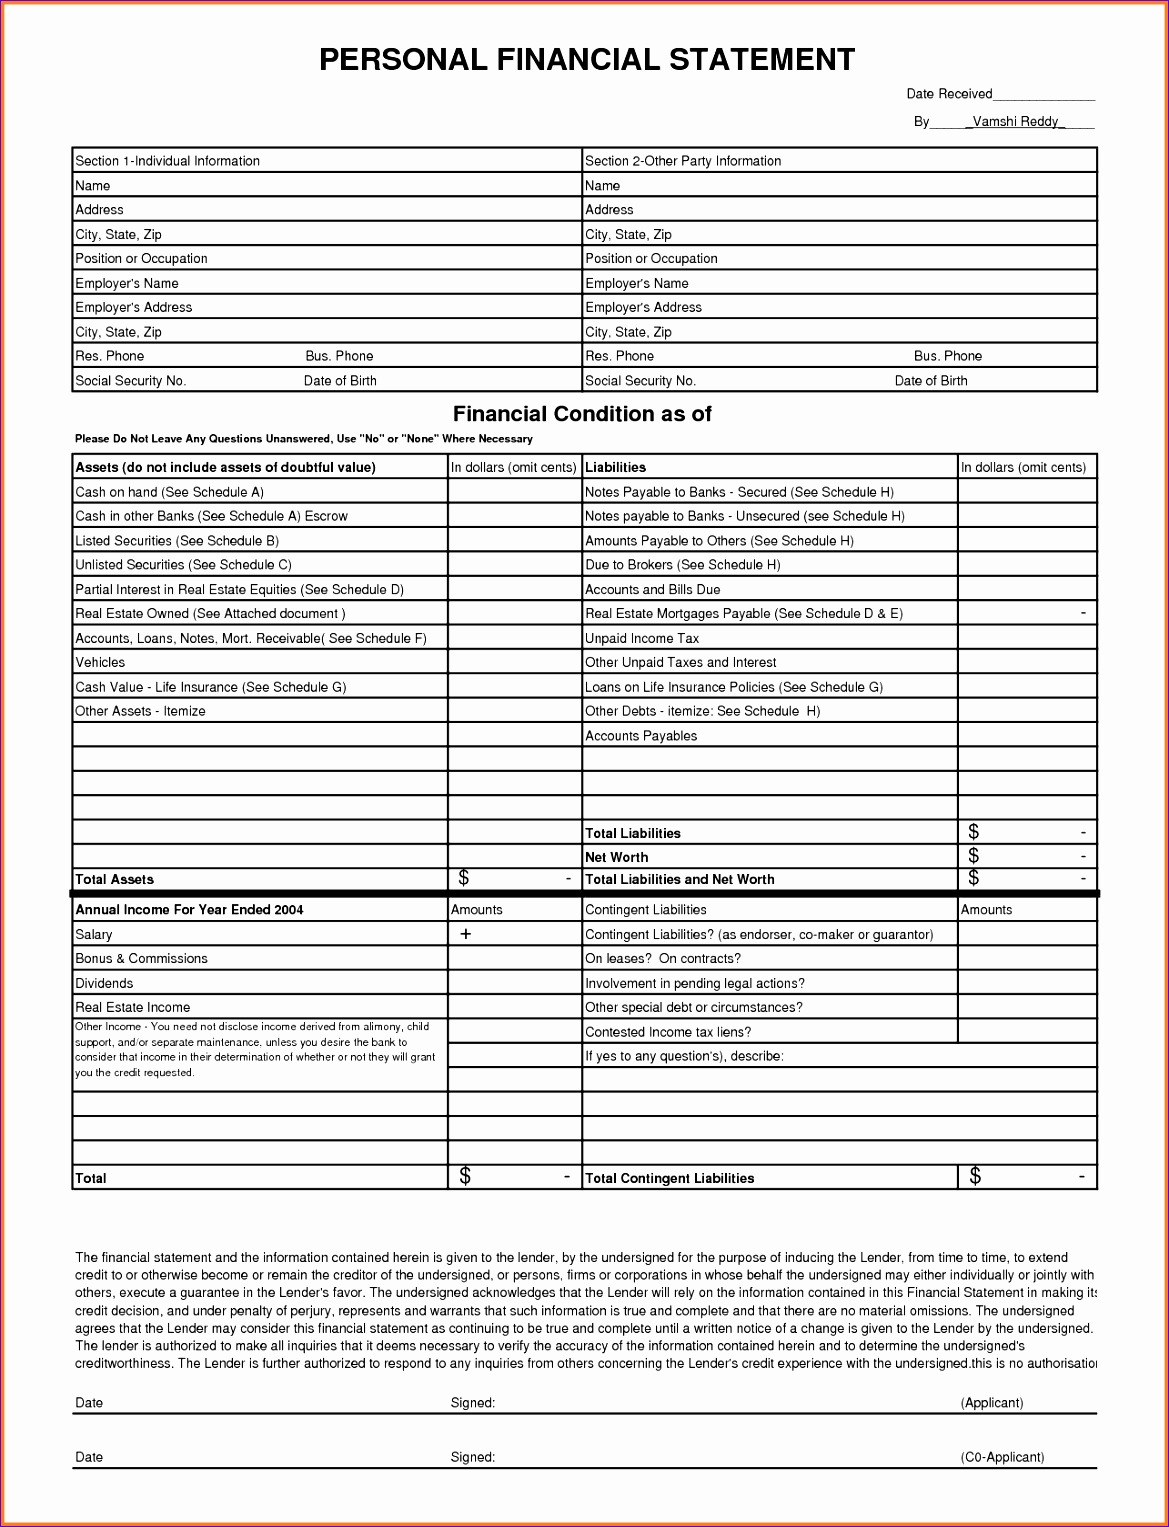 personal financial statement form excel financial statement template 333